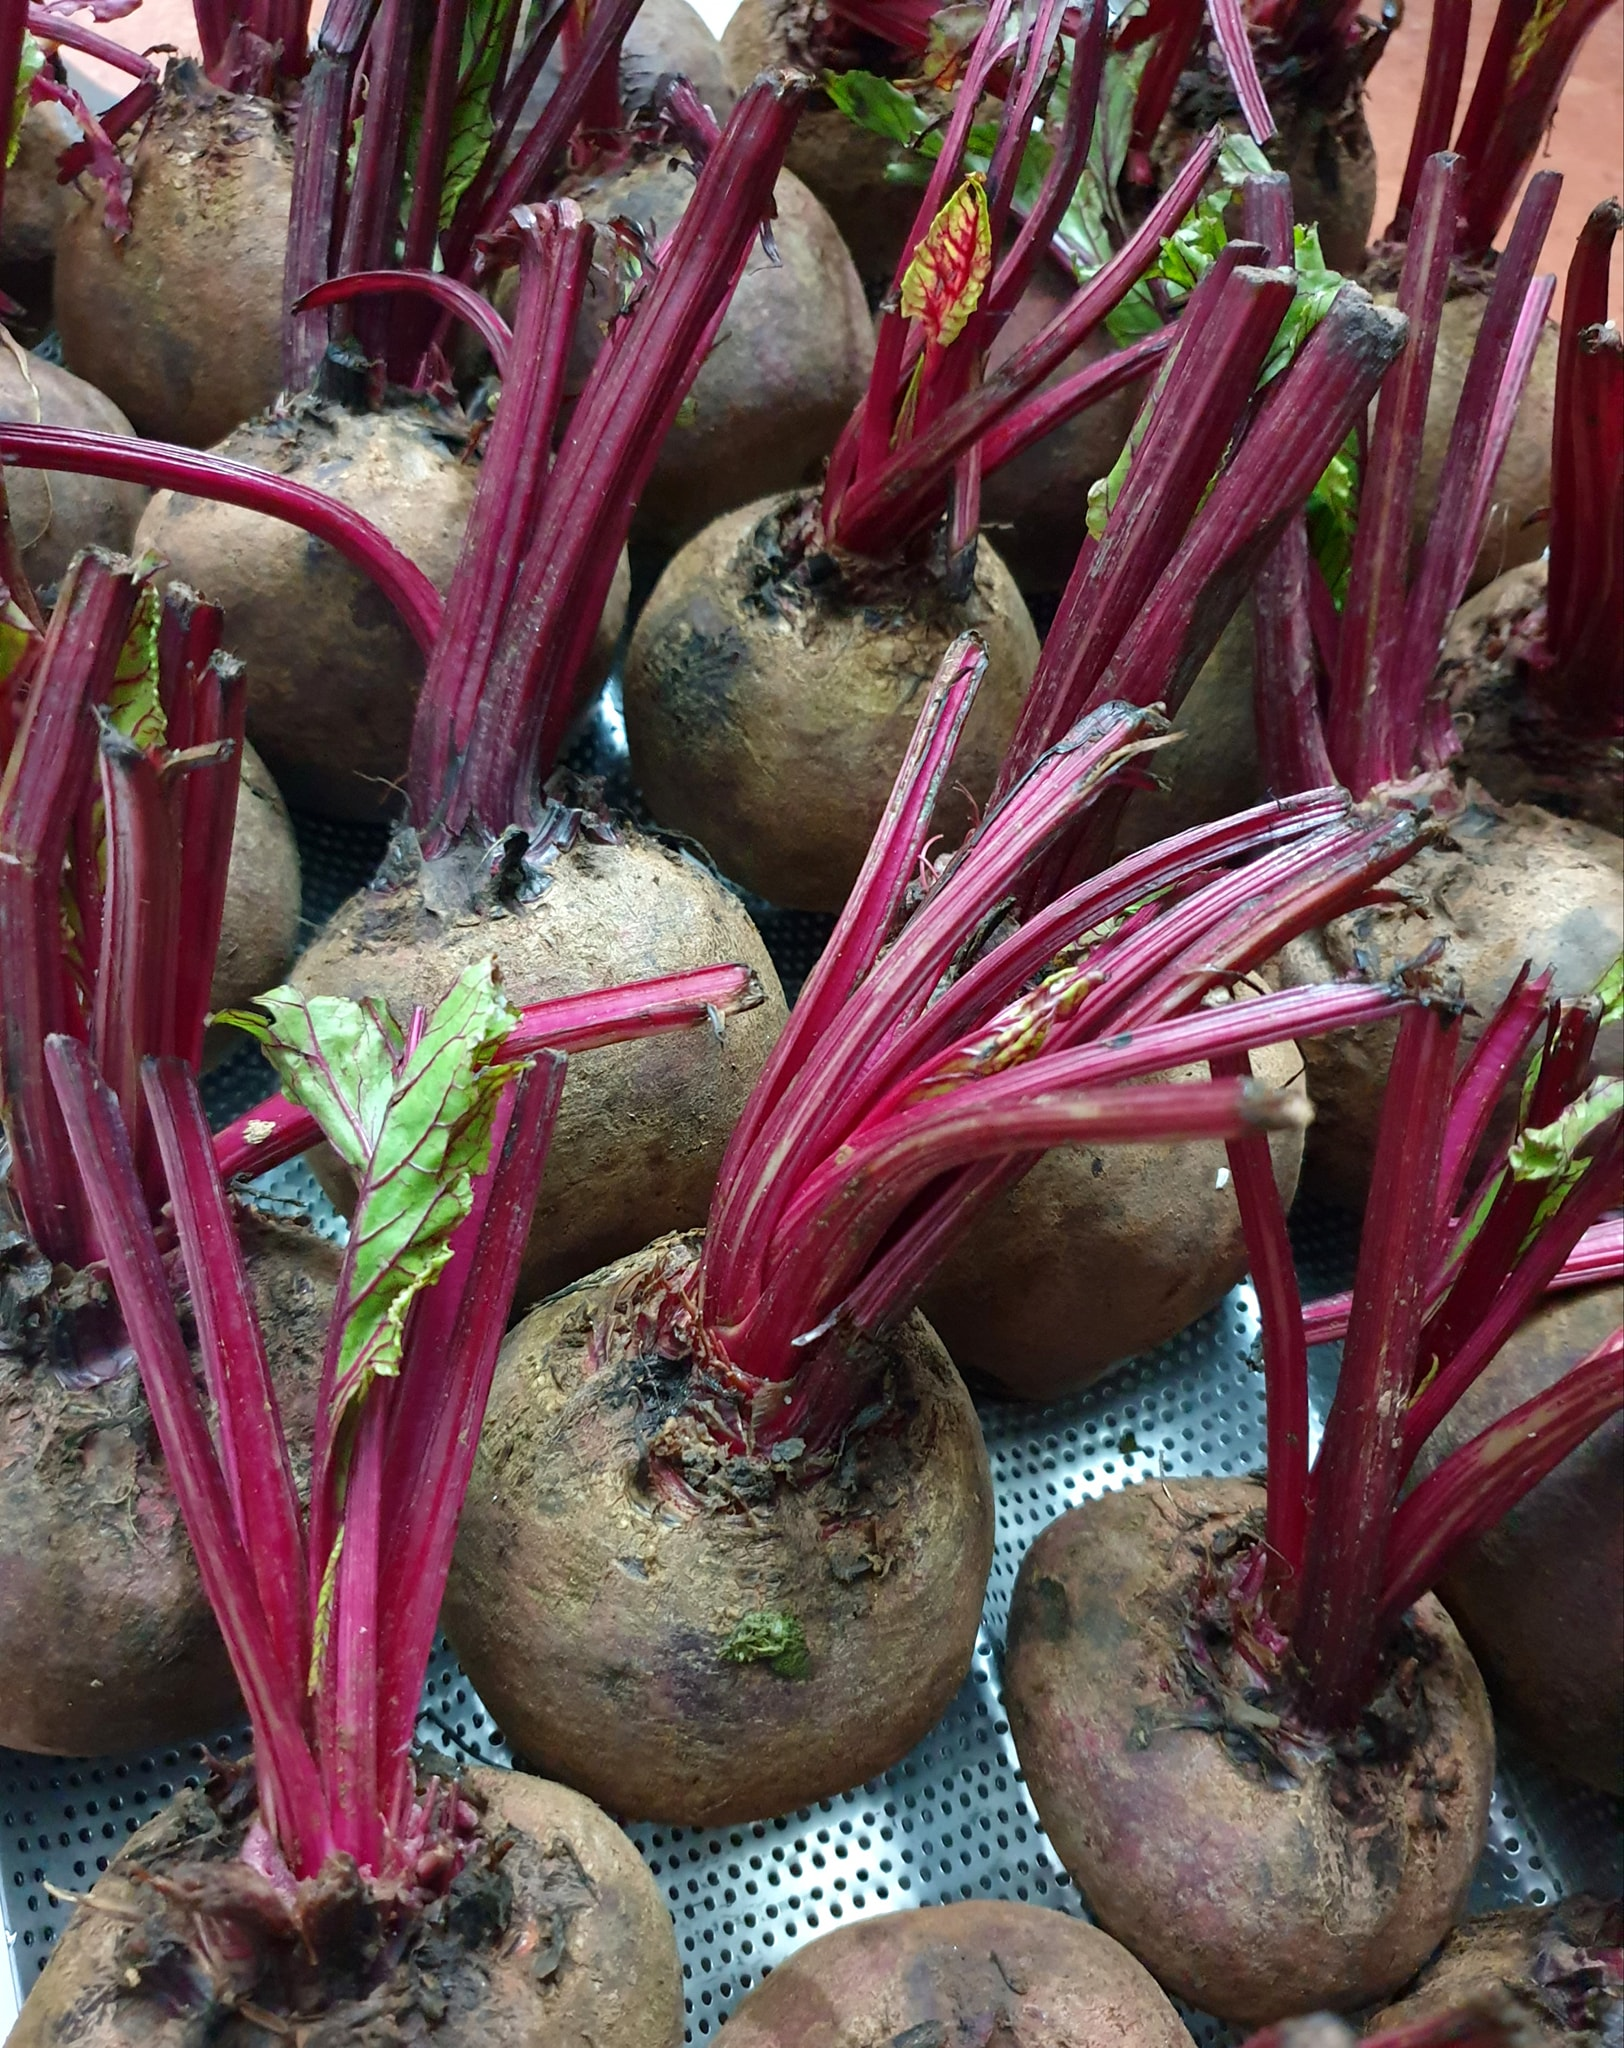 Beetroots are prepared to make red breads at the Cyburger by Homekekery in Hanoi. Photo: Supplied